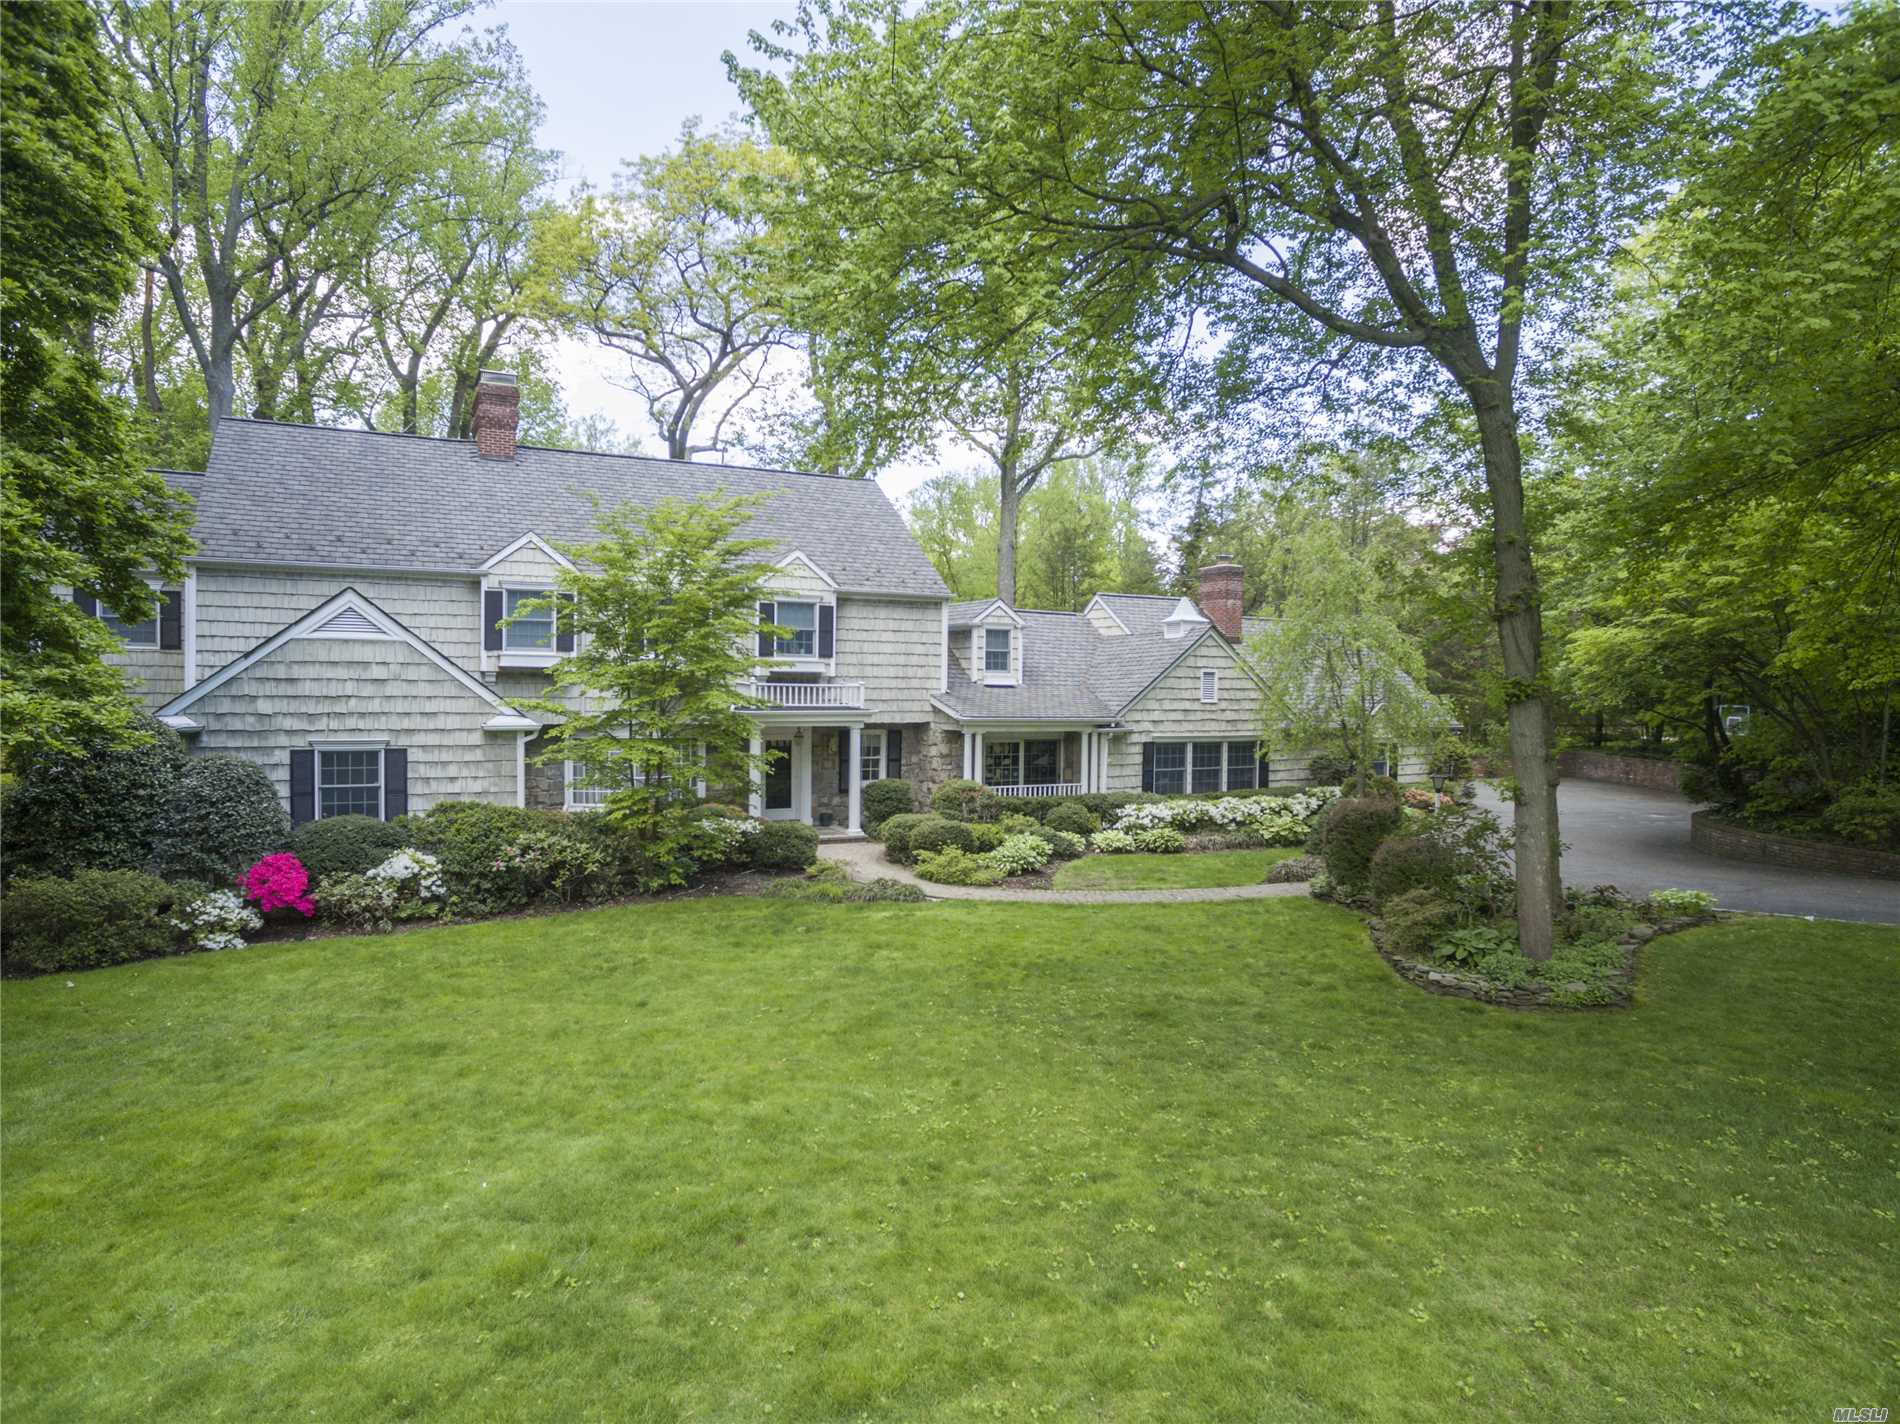 24 Bonnie Heights Rd Manhasset, NY 11030